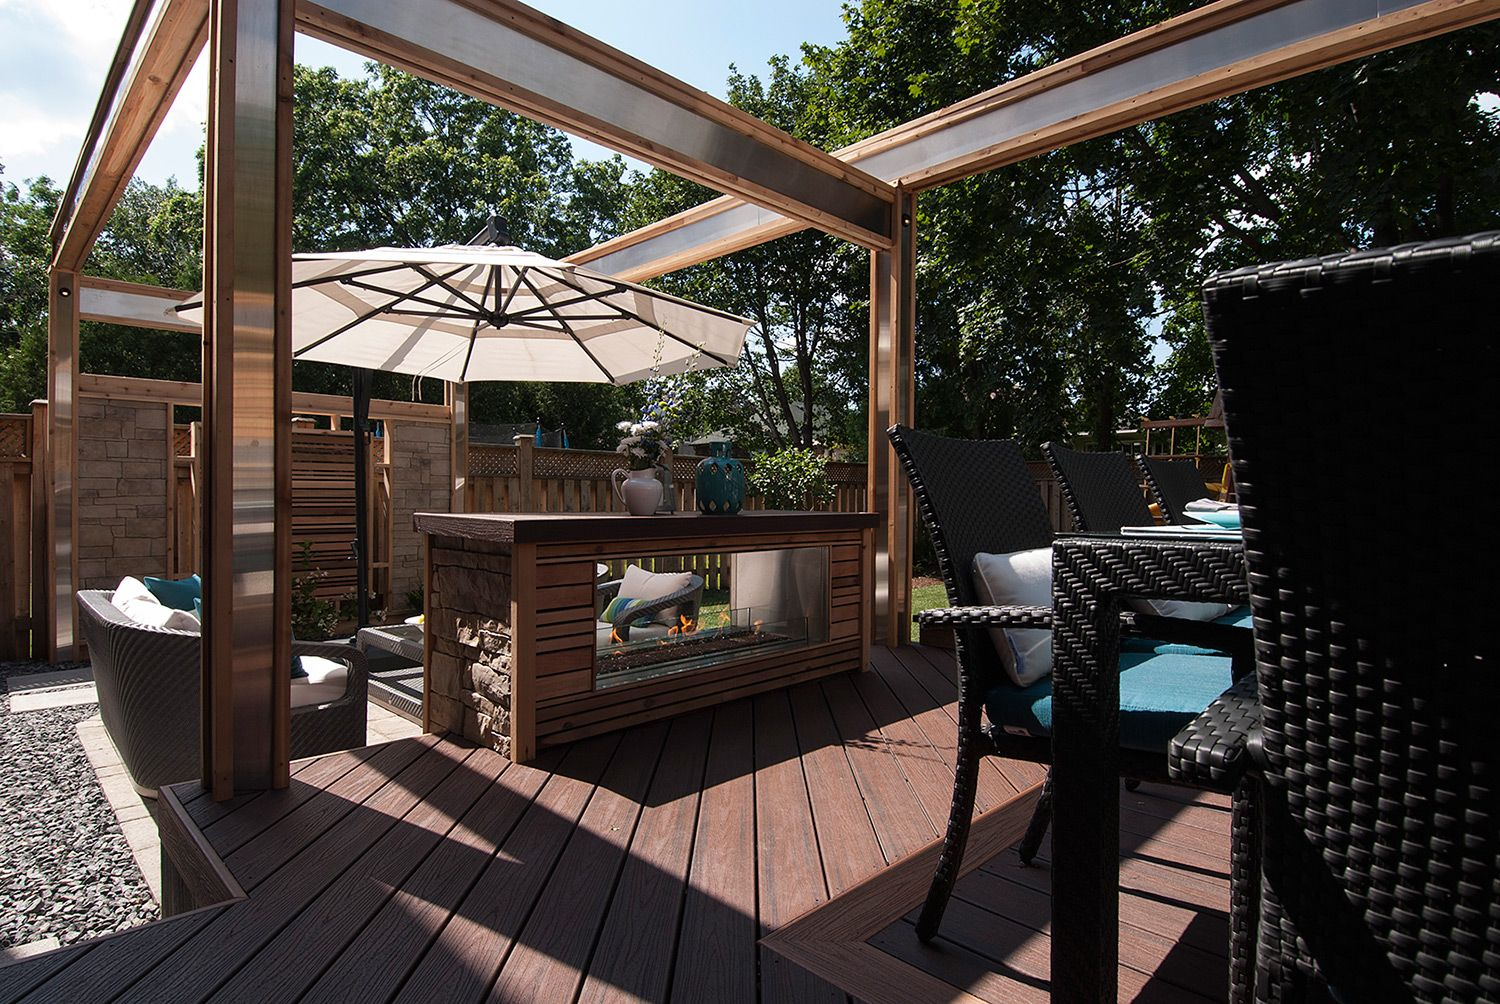 Decked Out Season 4 Gallery Paul Lafrance Design Deck Design Backyard Pool Fire Features